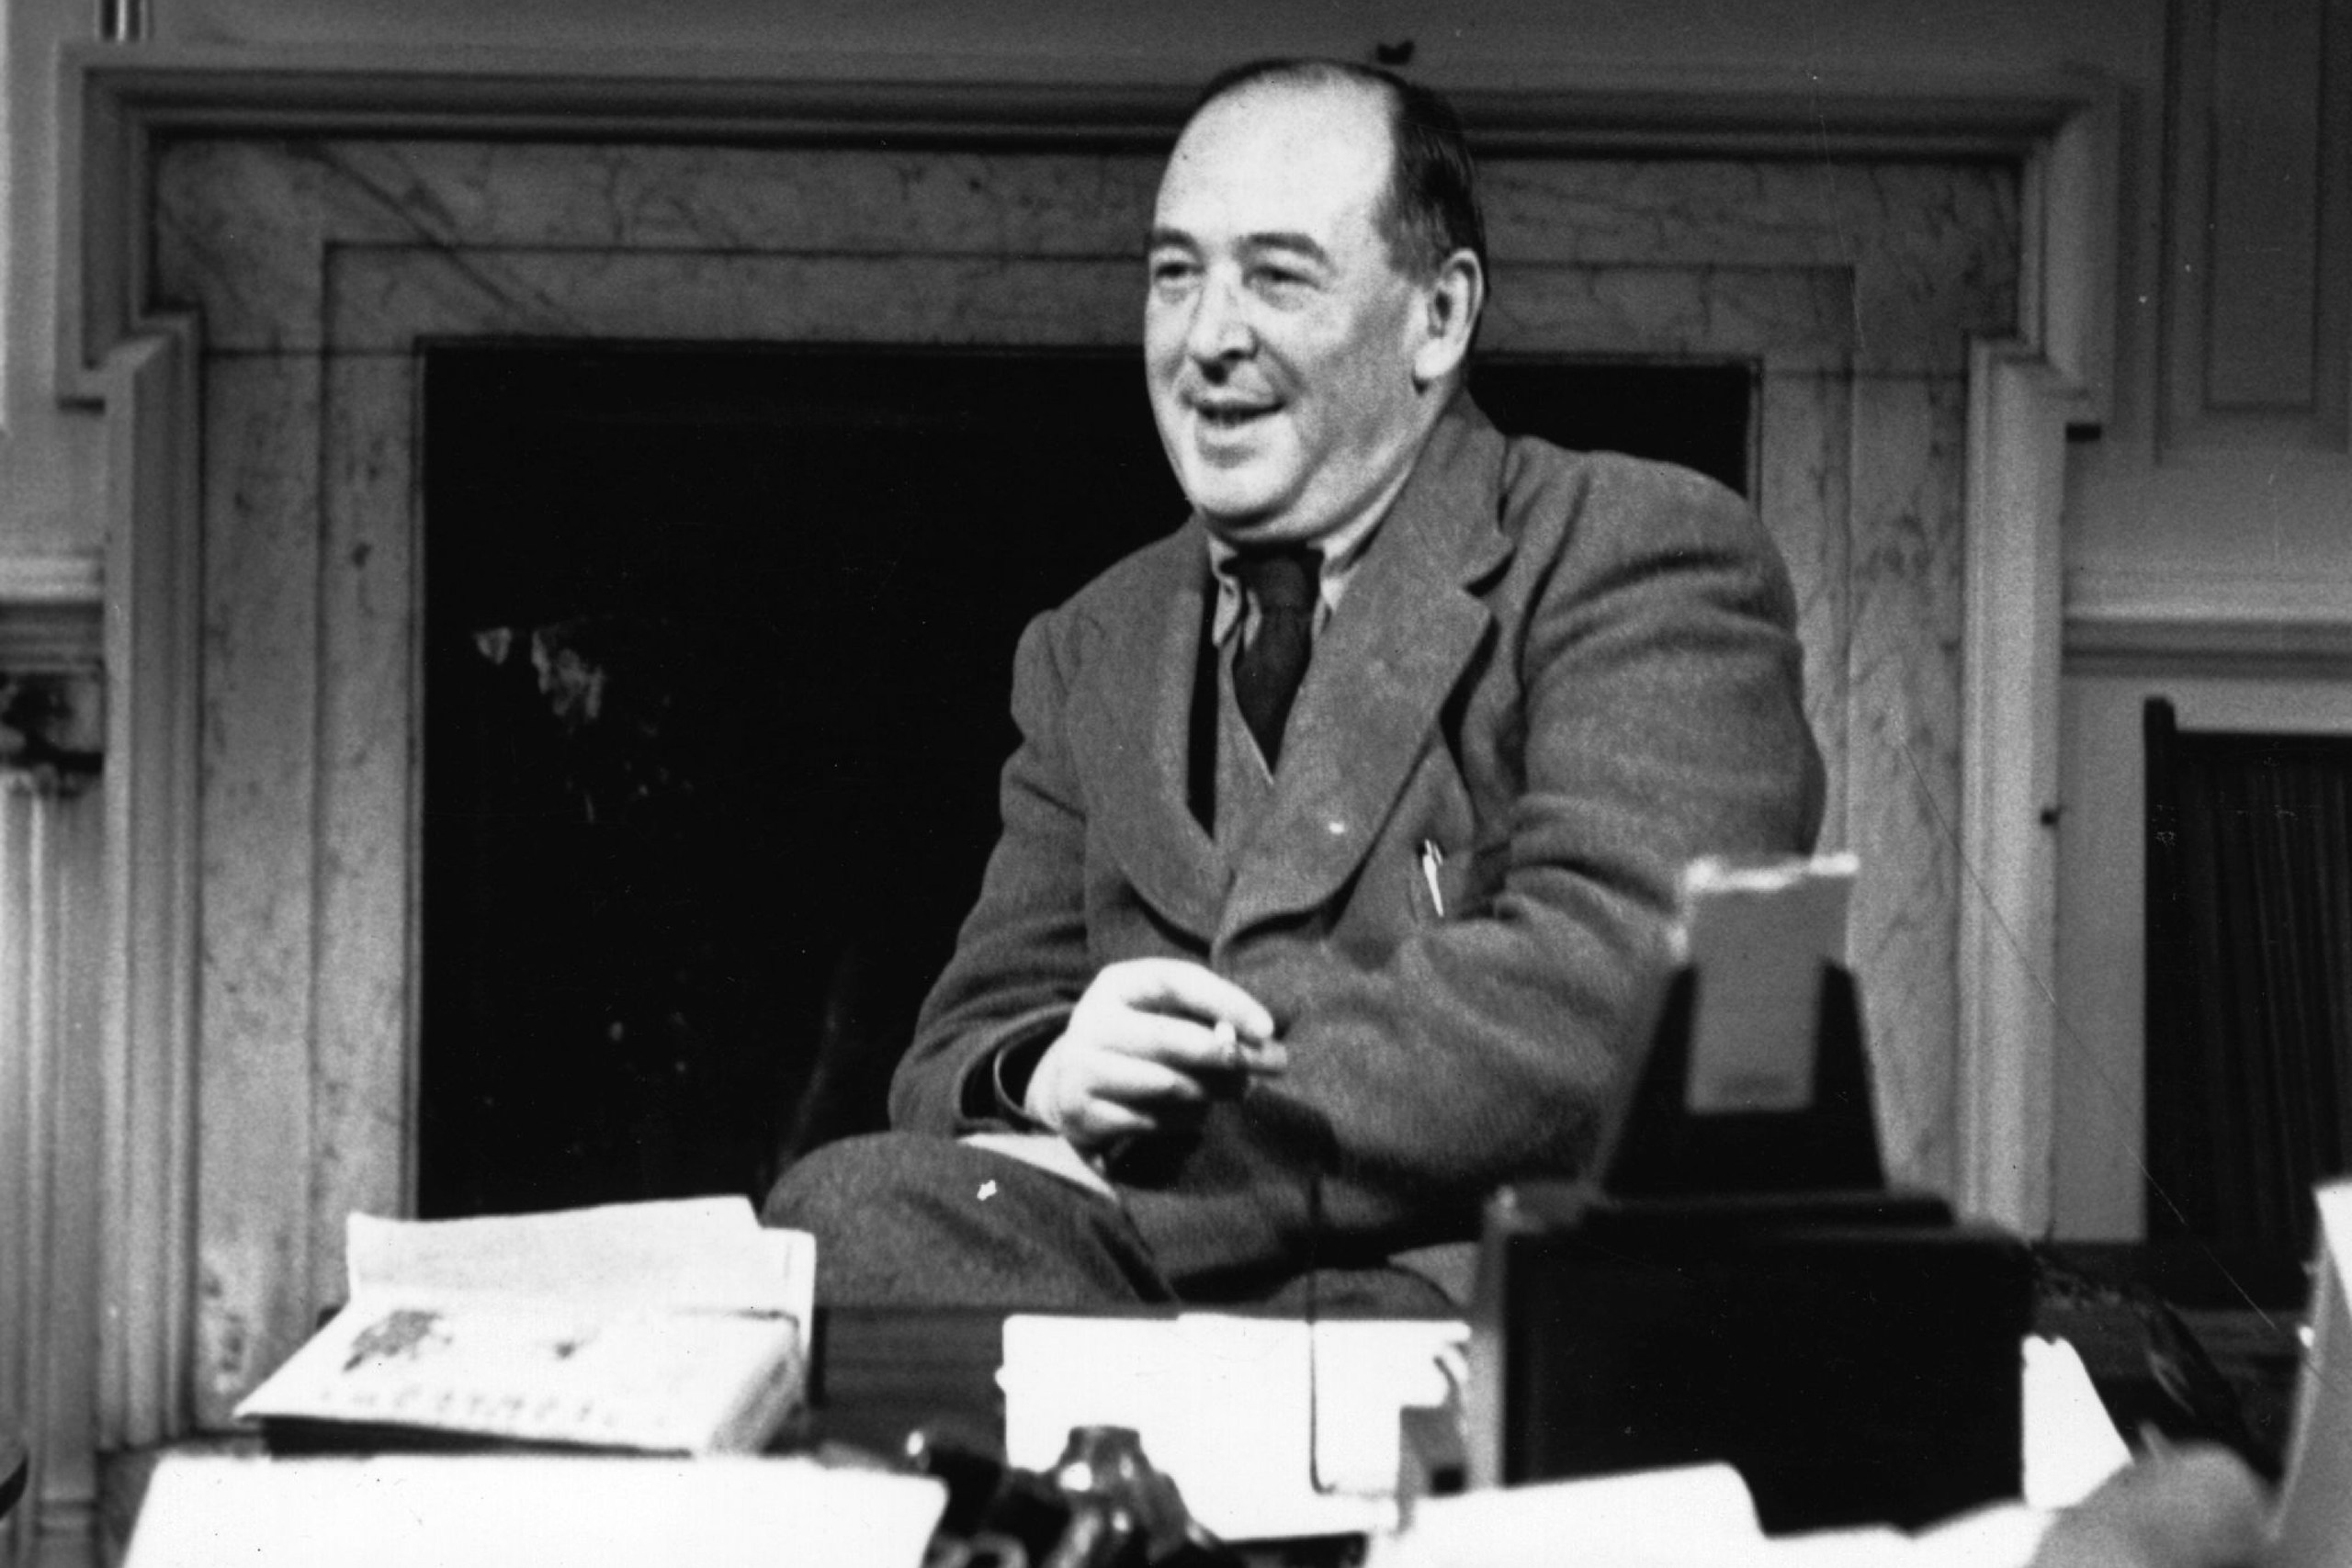 the motif of the christian faith in the literary works of clive staples lewis Facts about cs lewis bring the information about a poet, novelist and literary critic from britain he was born on november 29th, 1898 and died on november 22nd, 1963 his full name is clive staples lewis.